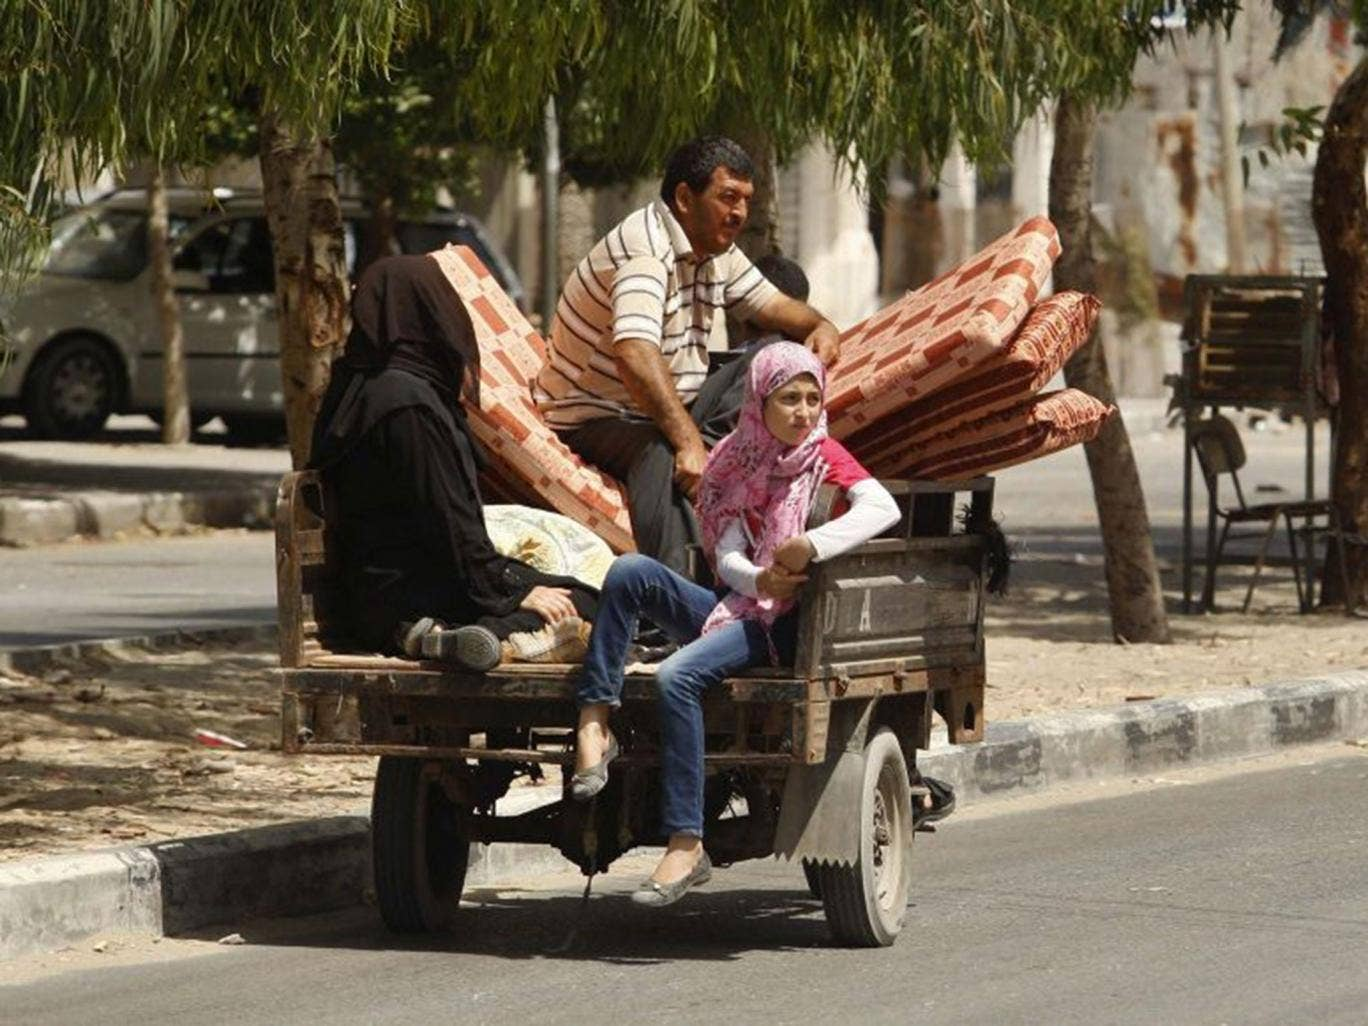 Palestinian refugees flee the conflict